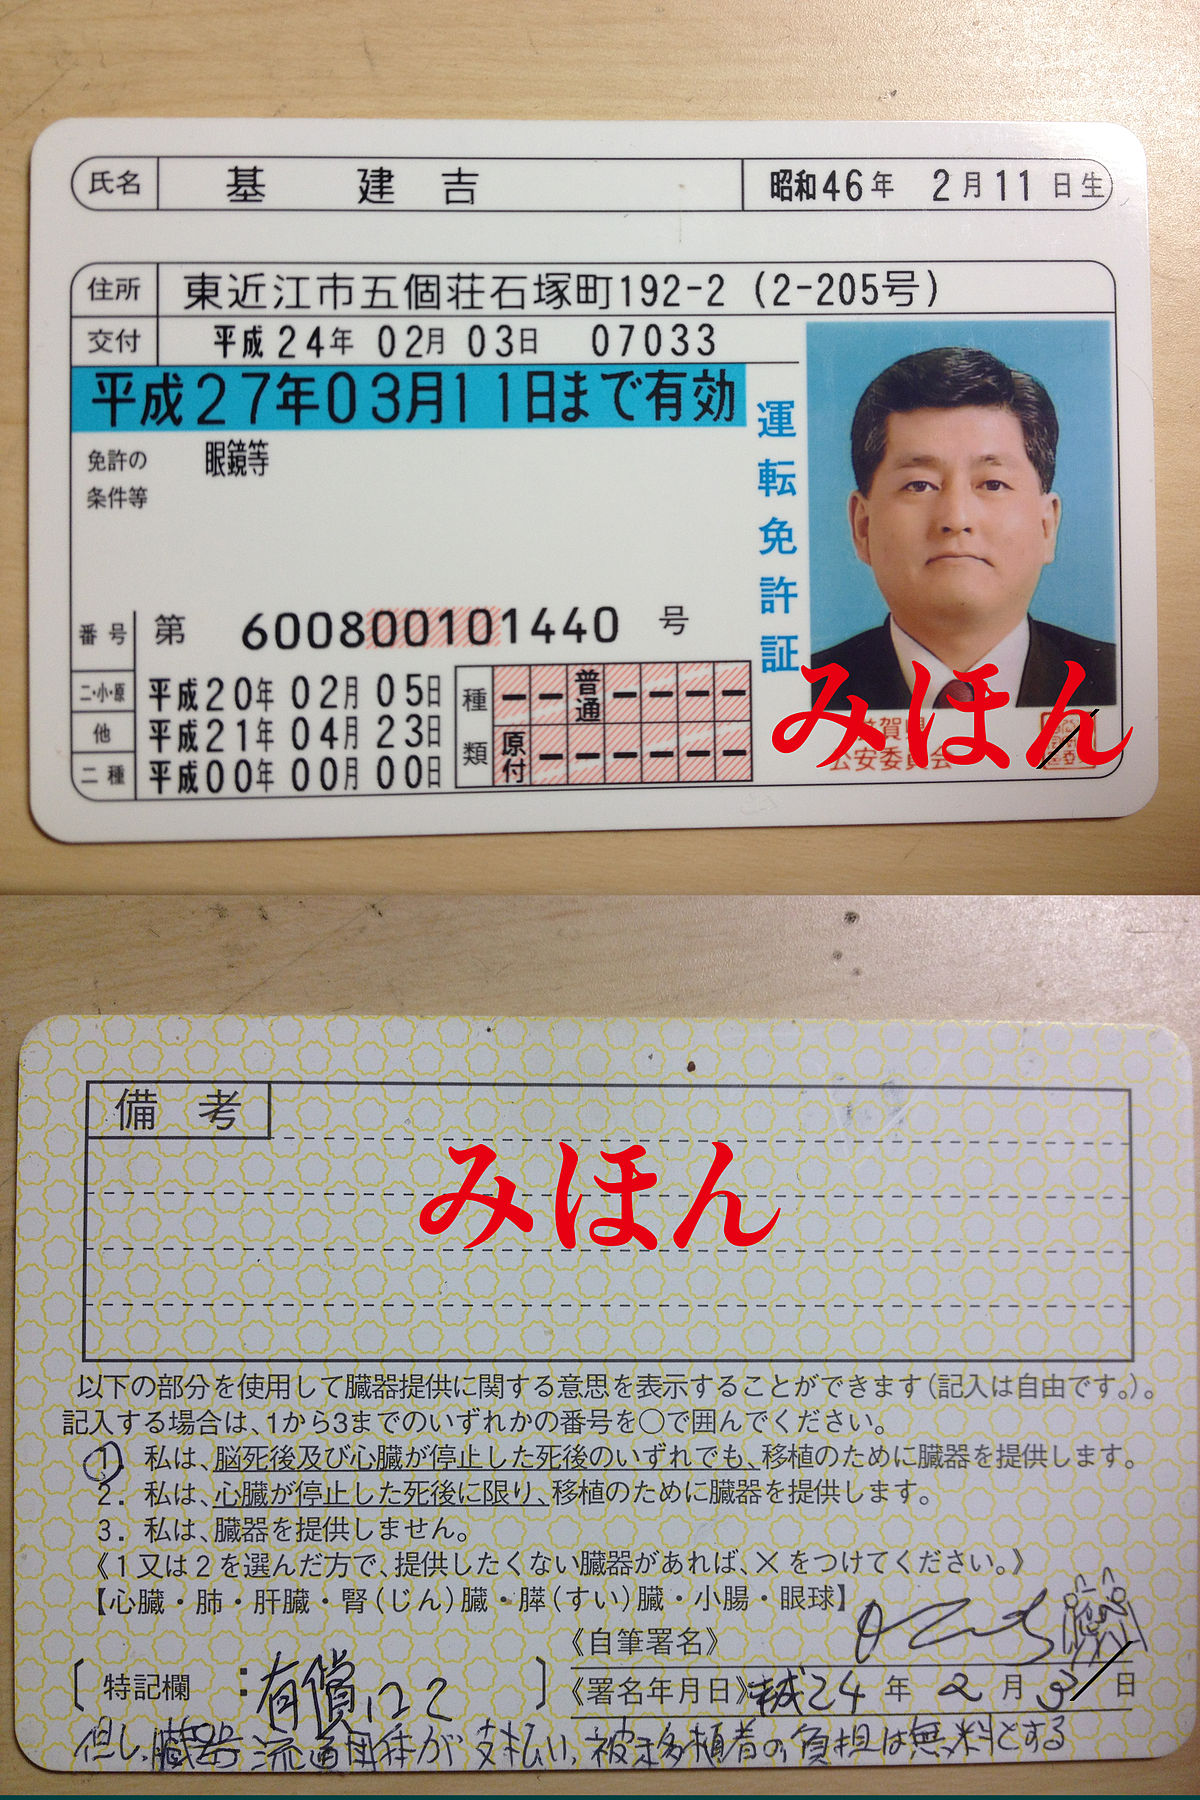 Driving licence in Japan - Wikipedia